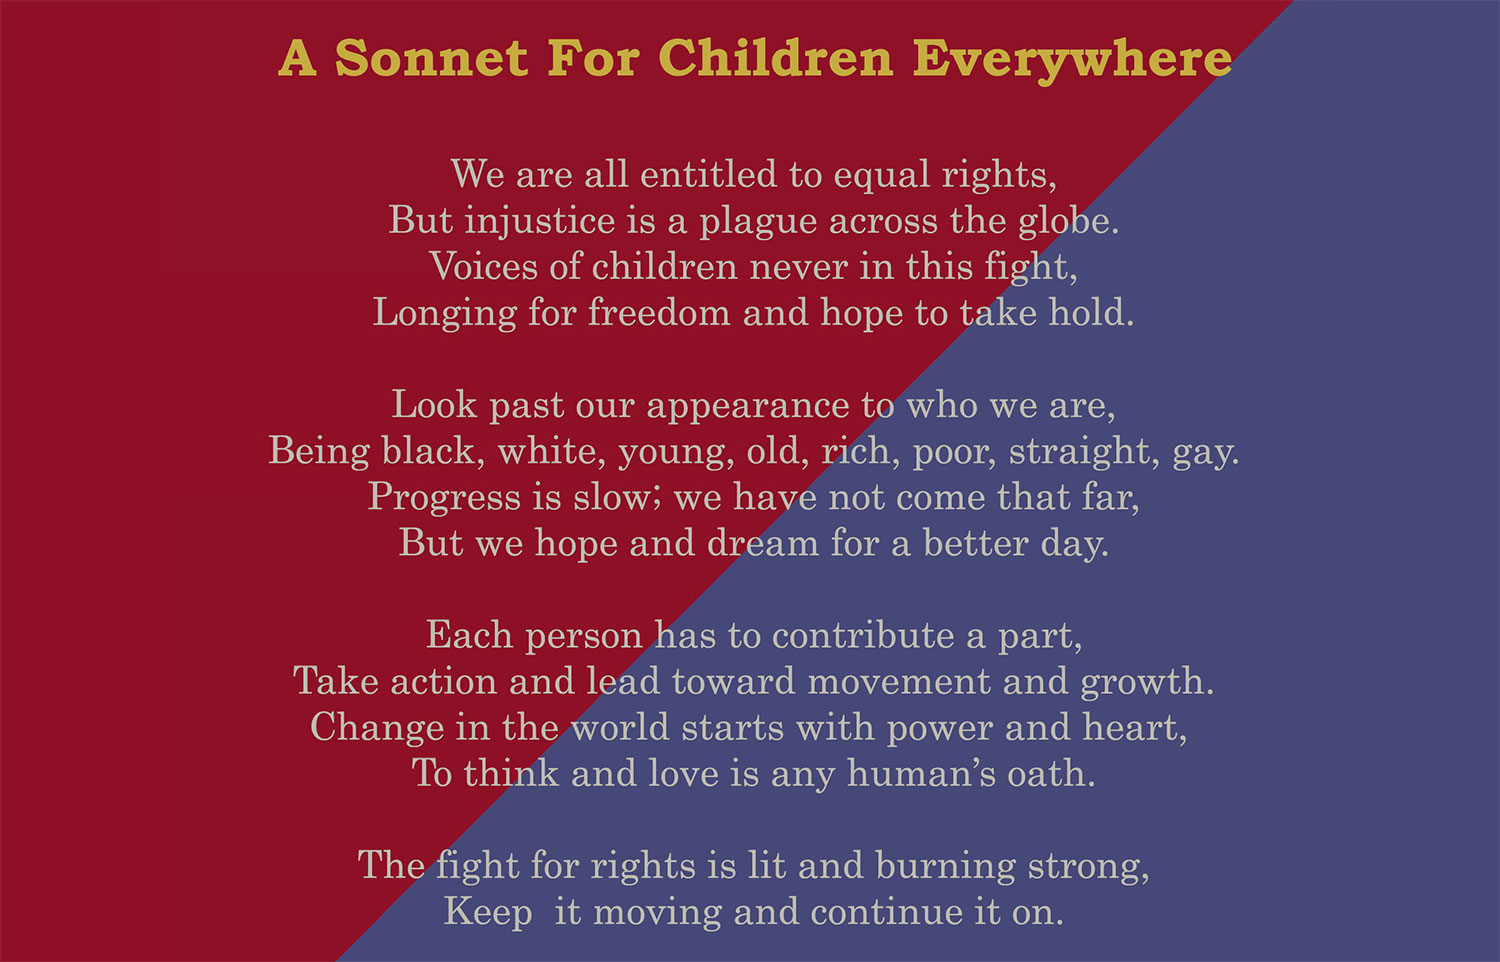 A Sonnet For Children Everywhere